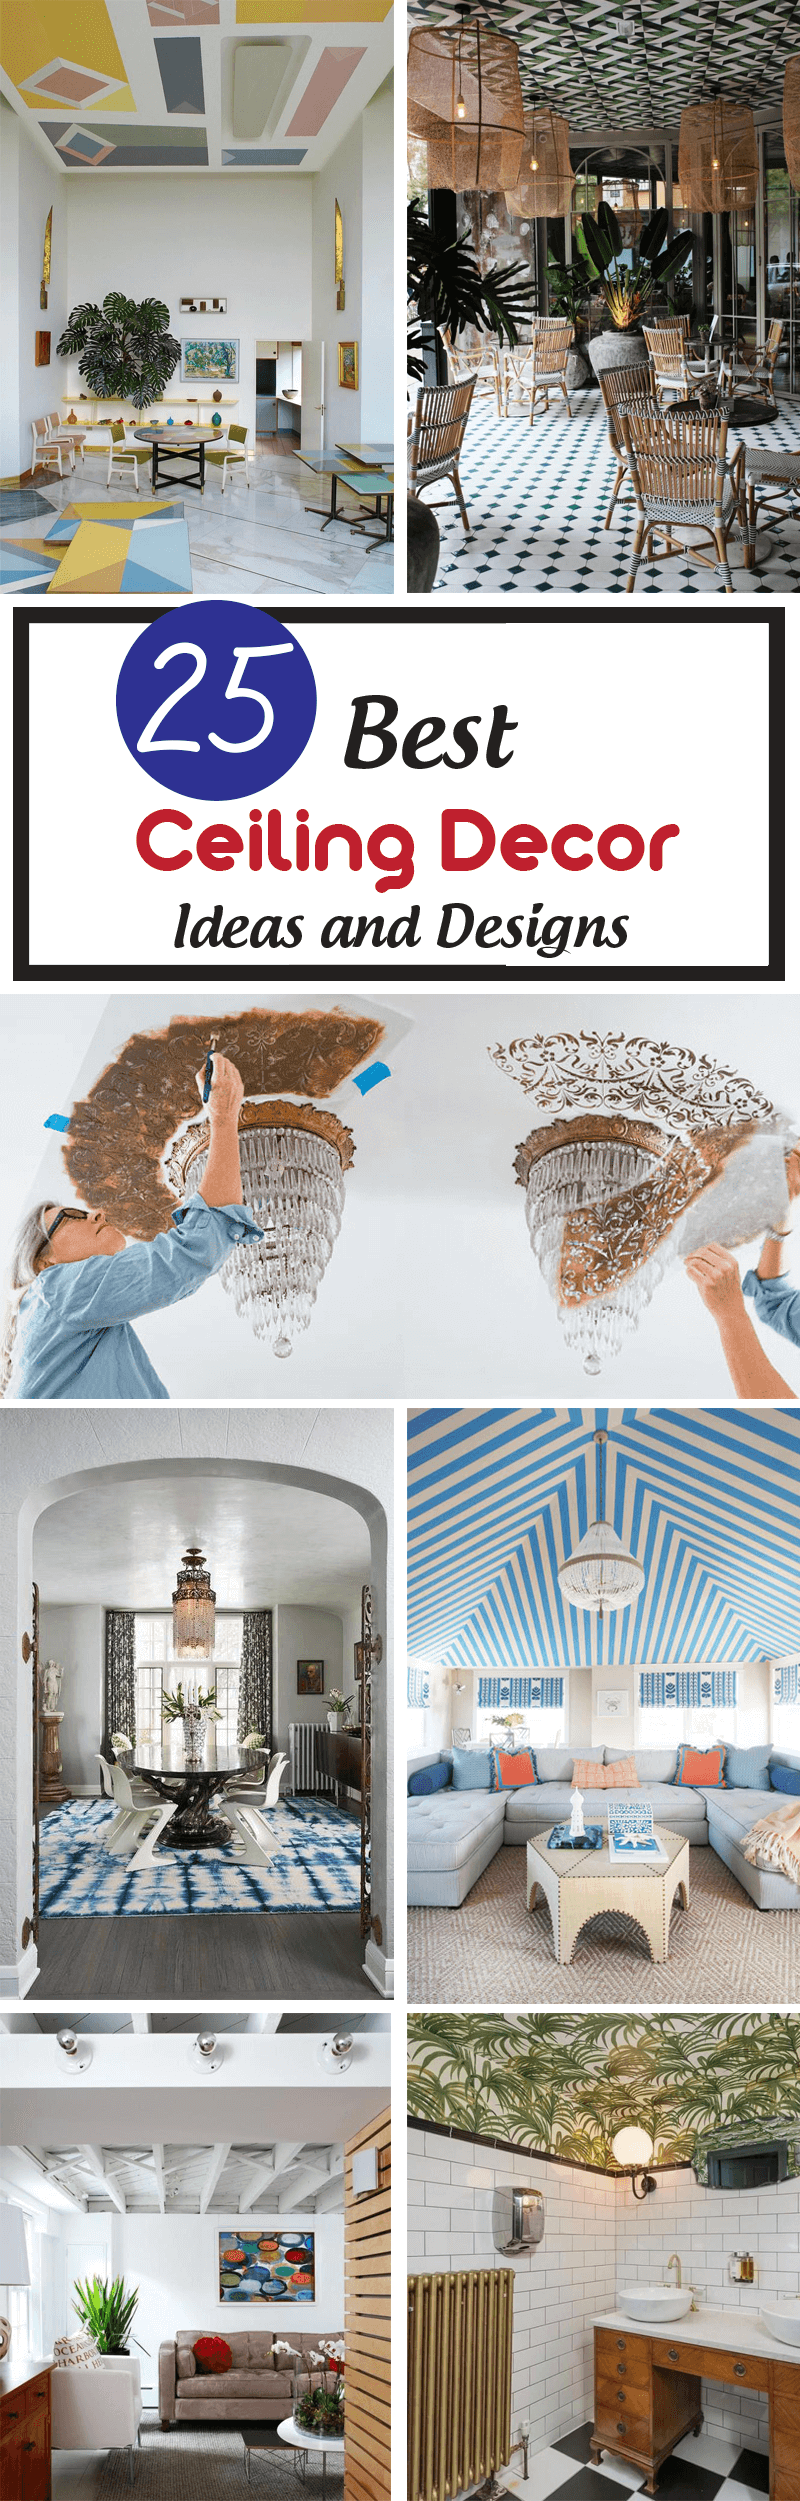 25 best ceiling decor ideas and designs